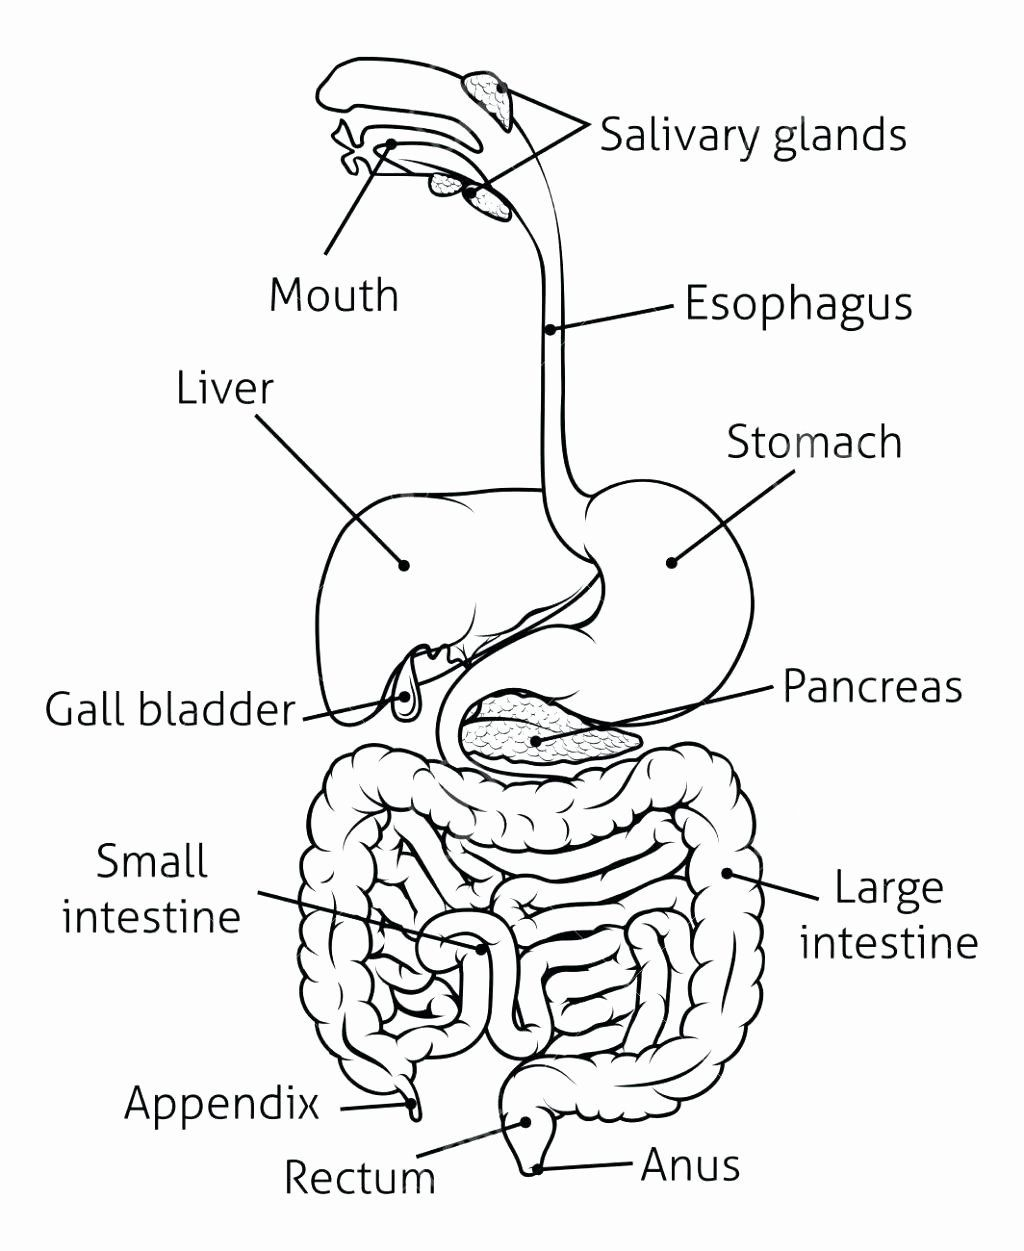 Skin Anatomy Coloring Pages   Human digestive system ...